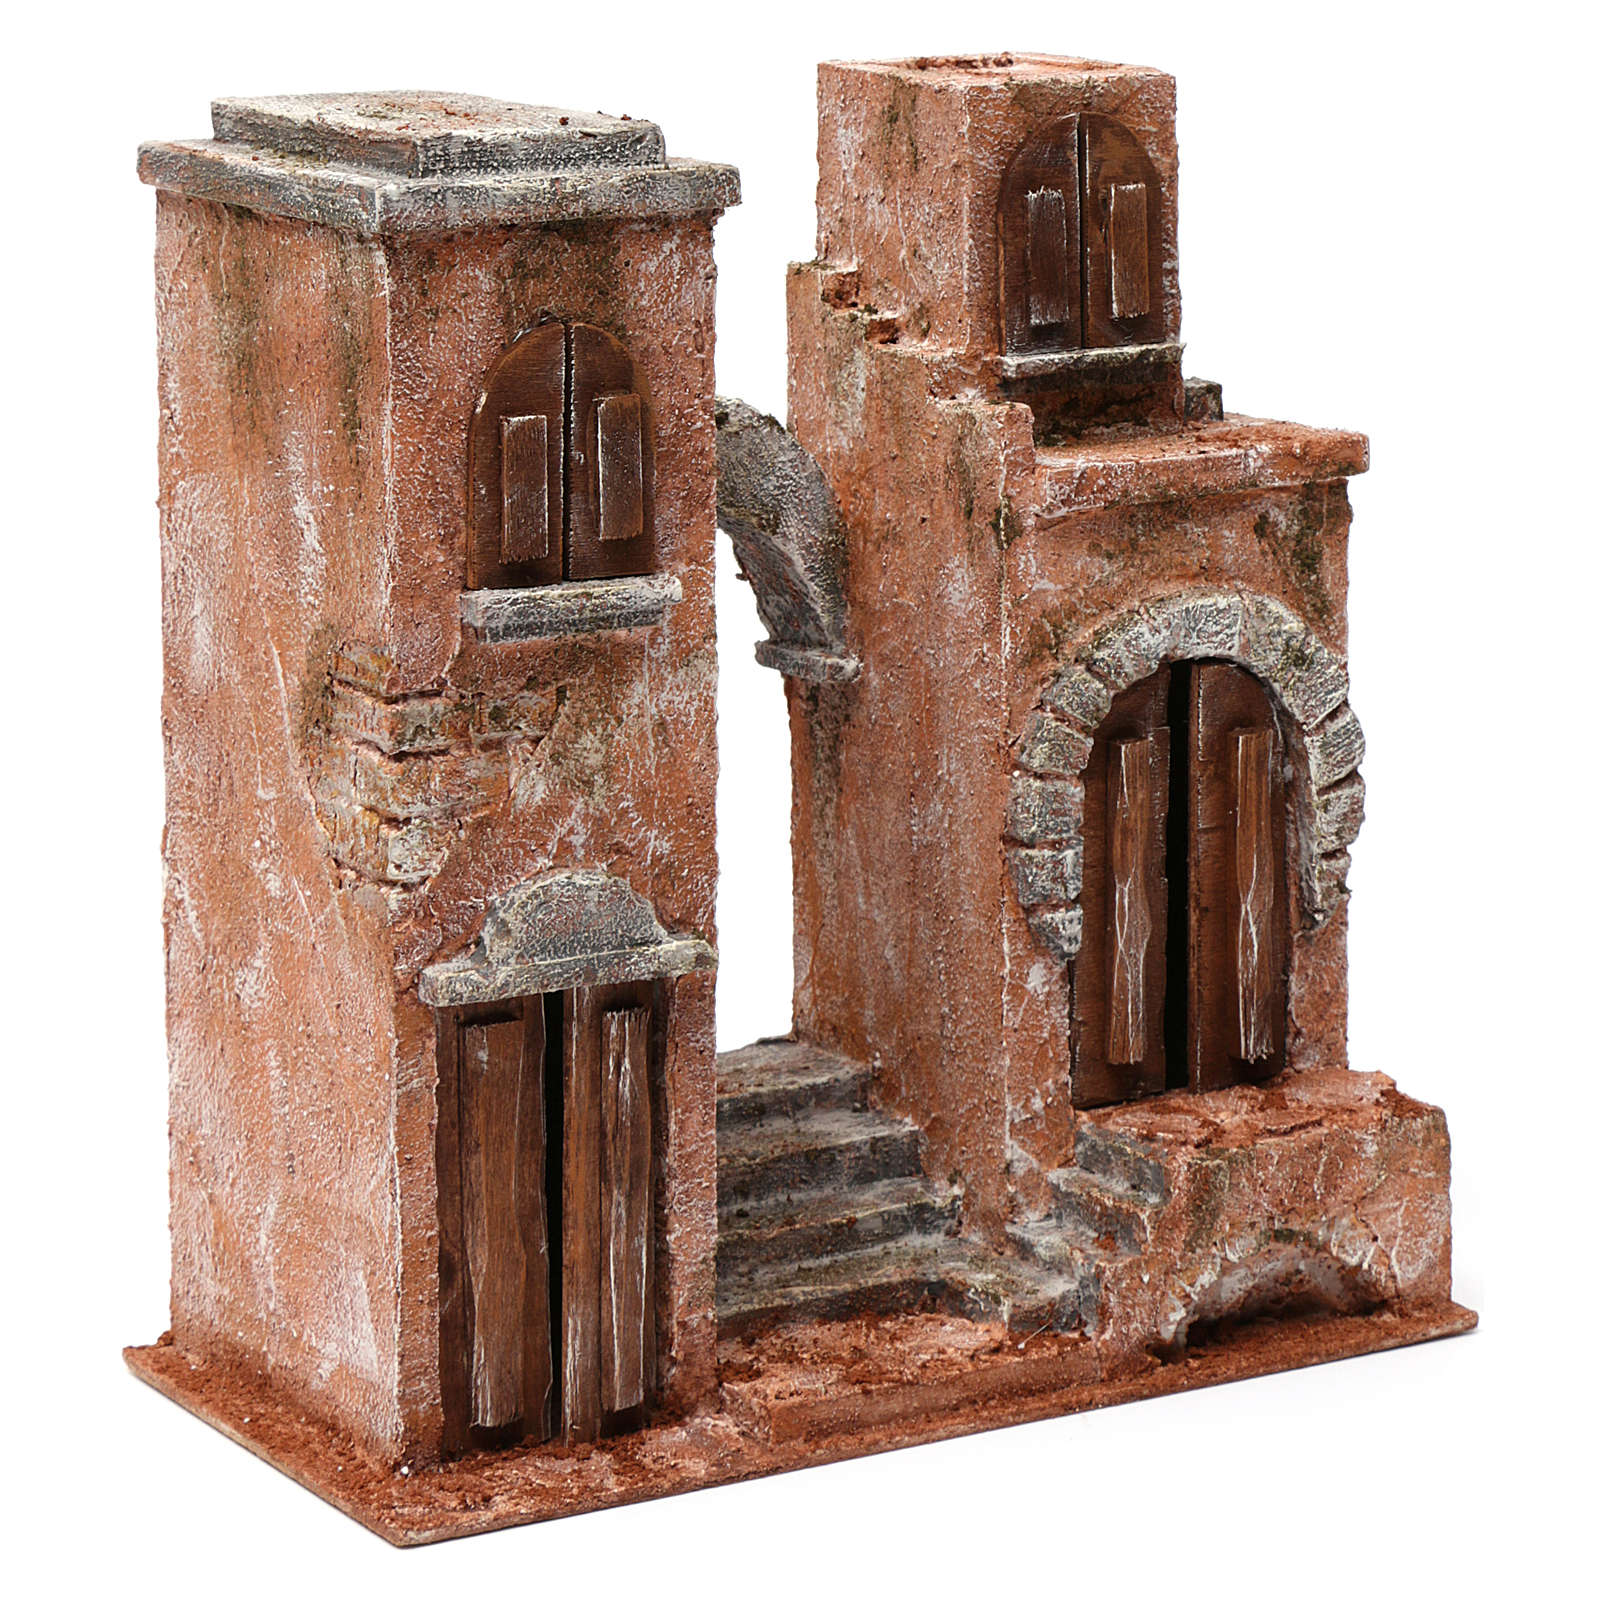 Arab setting with arch and stairs for 10 cm nativity scene 4